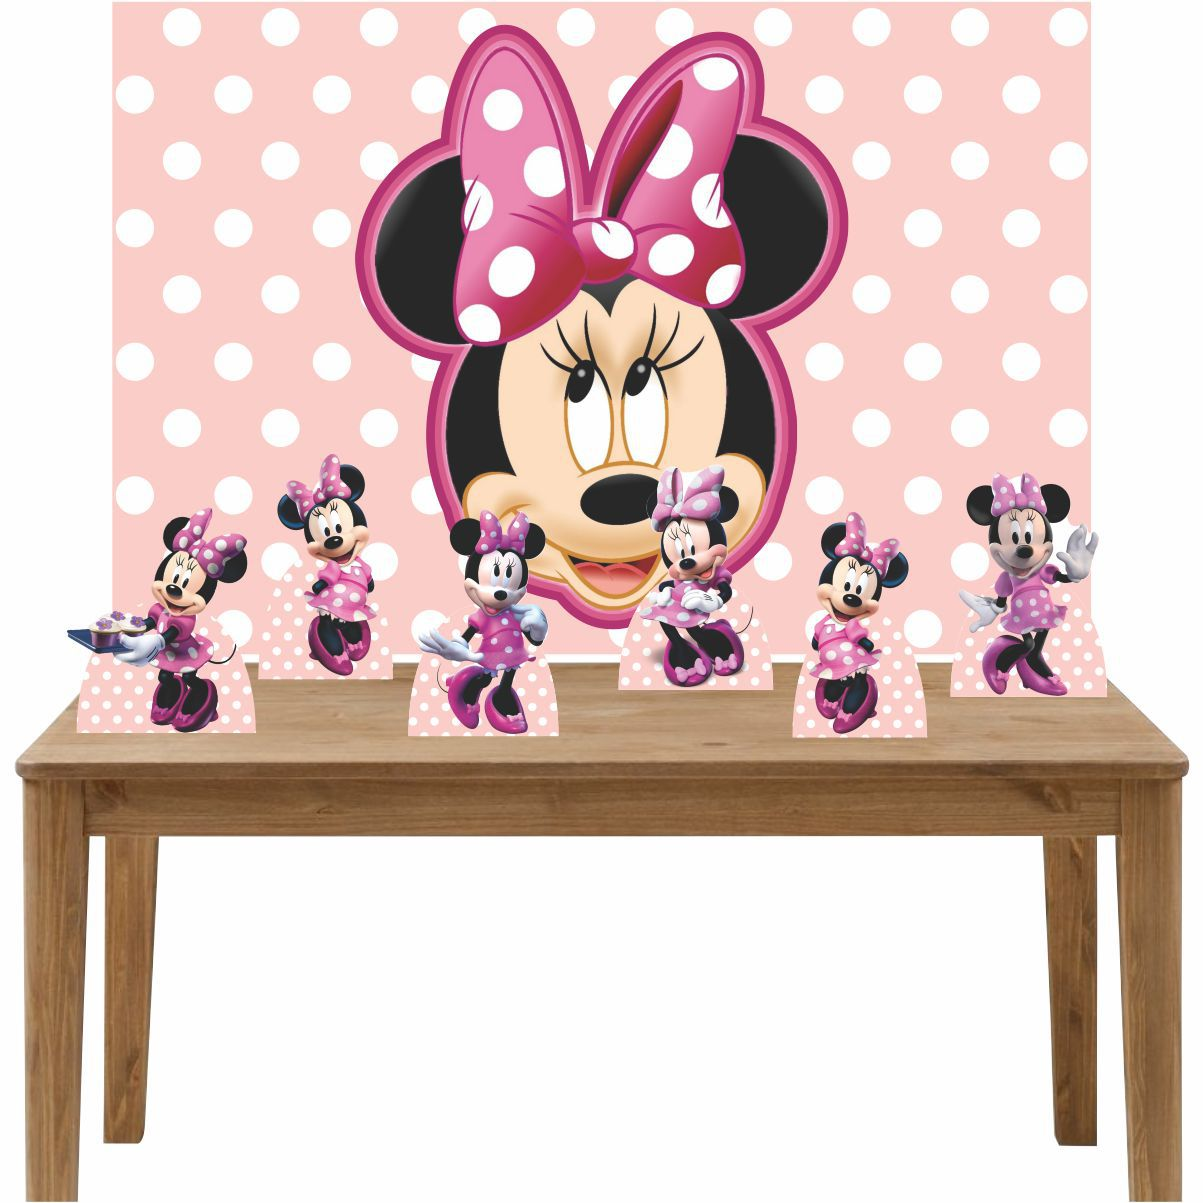 Kit 6 Displays de Mesa e Painel Minnie Rosa